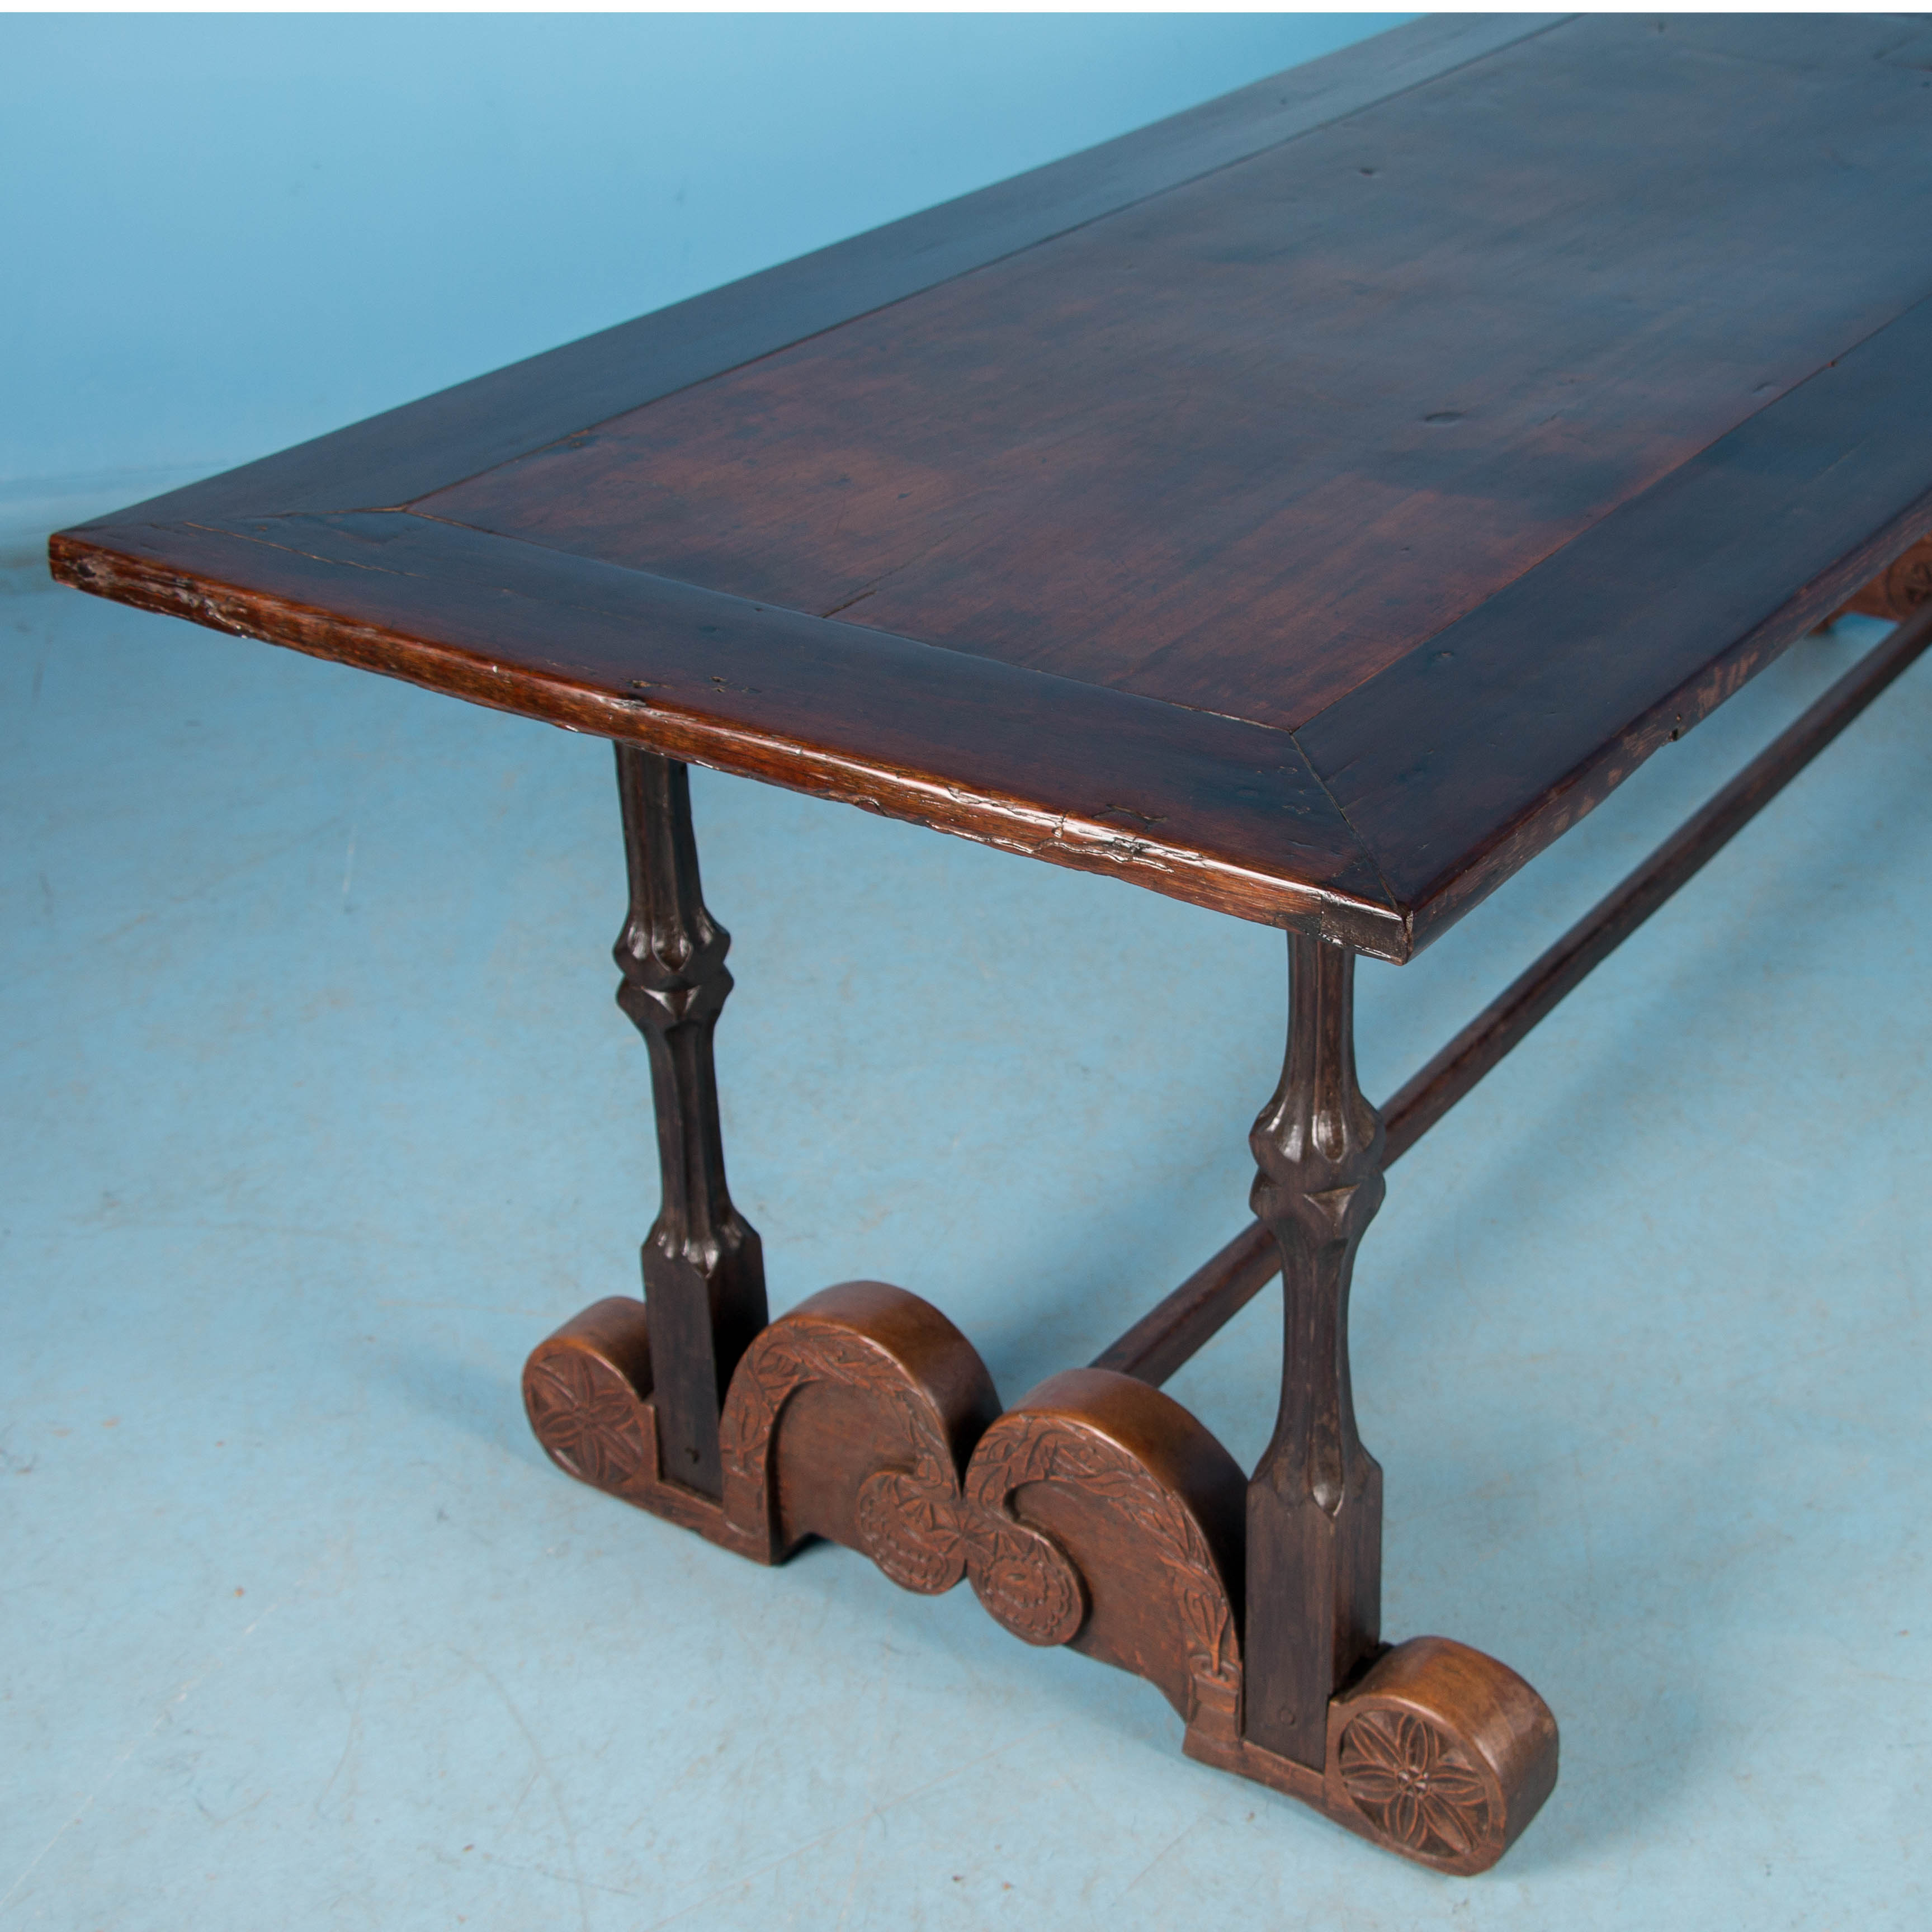 Tables | Scandinavian Antiques | Antique Tables for Sale